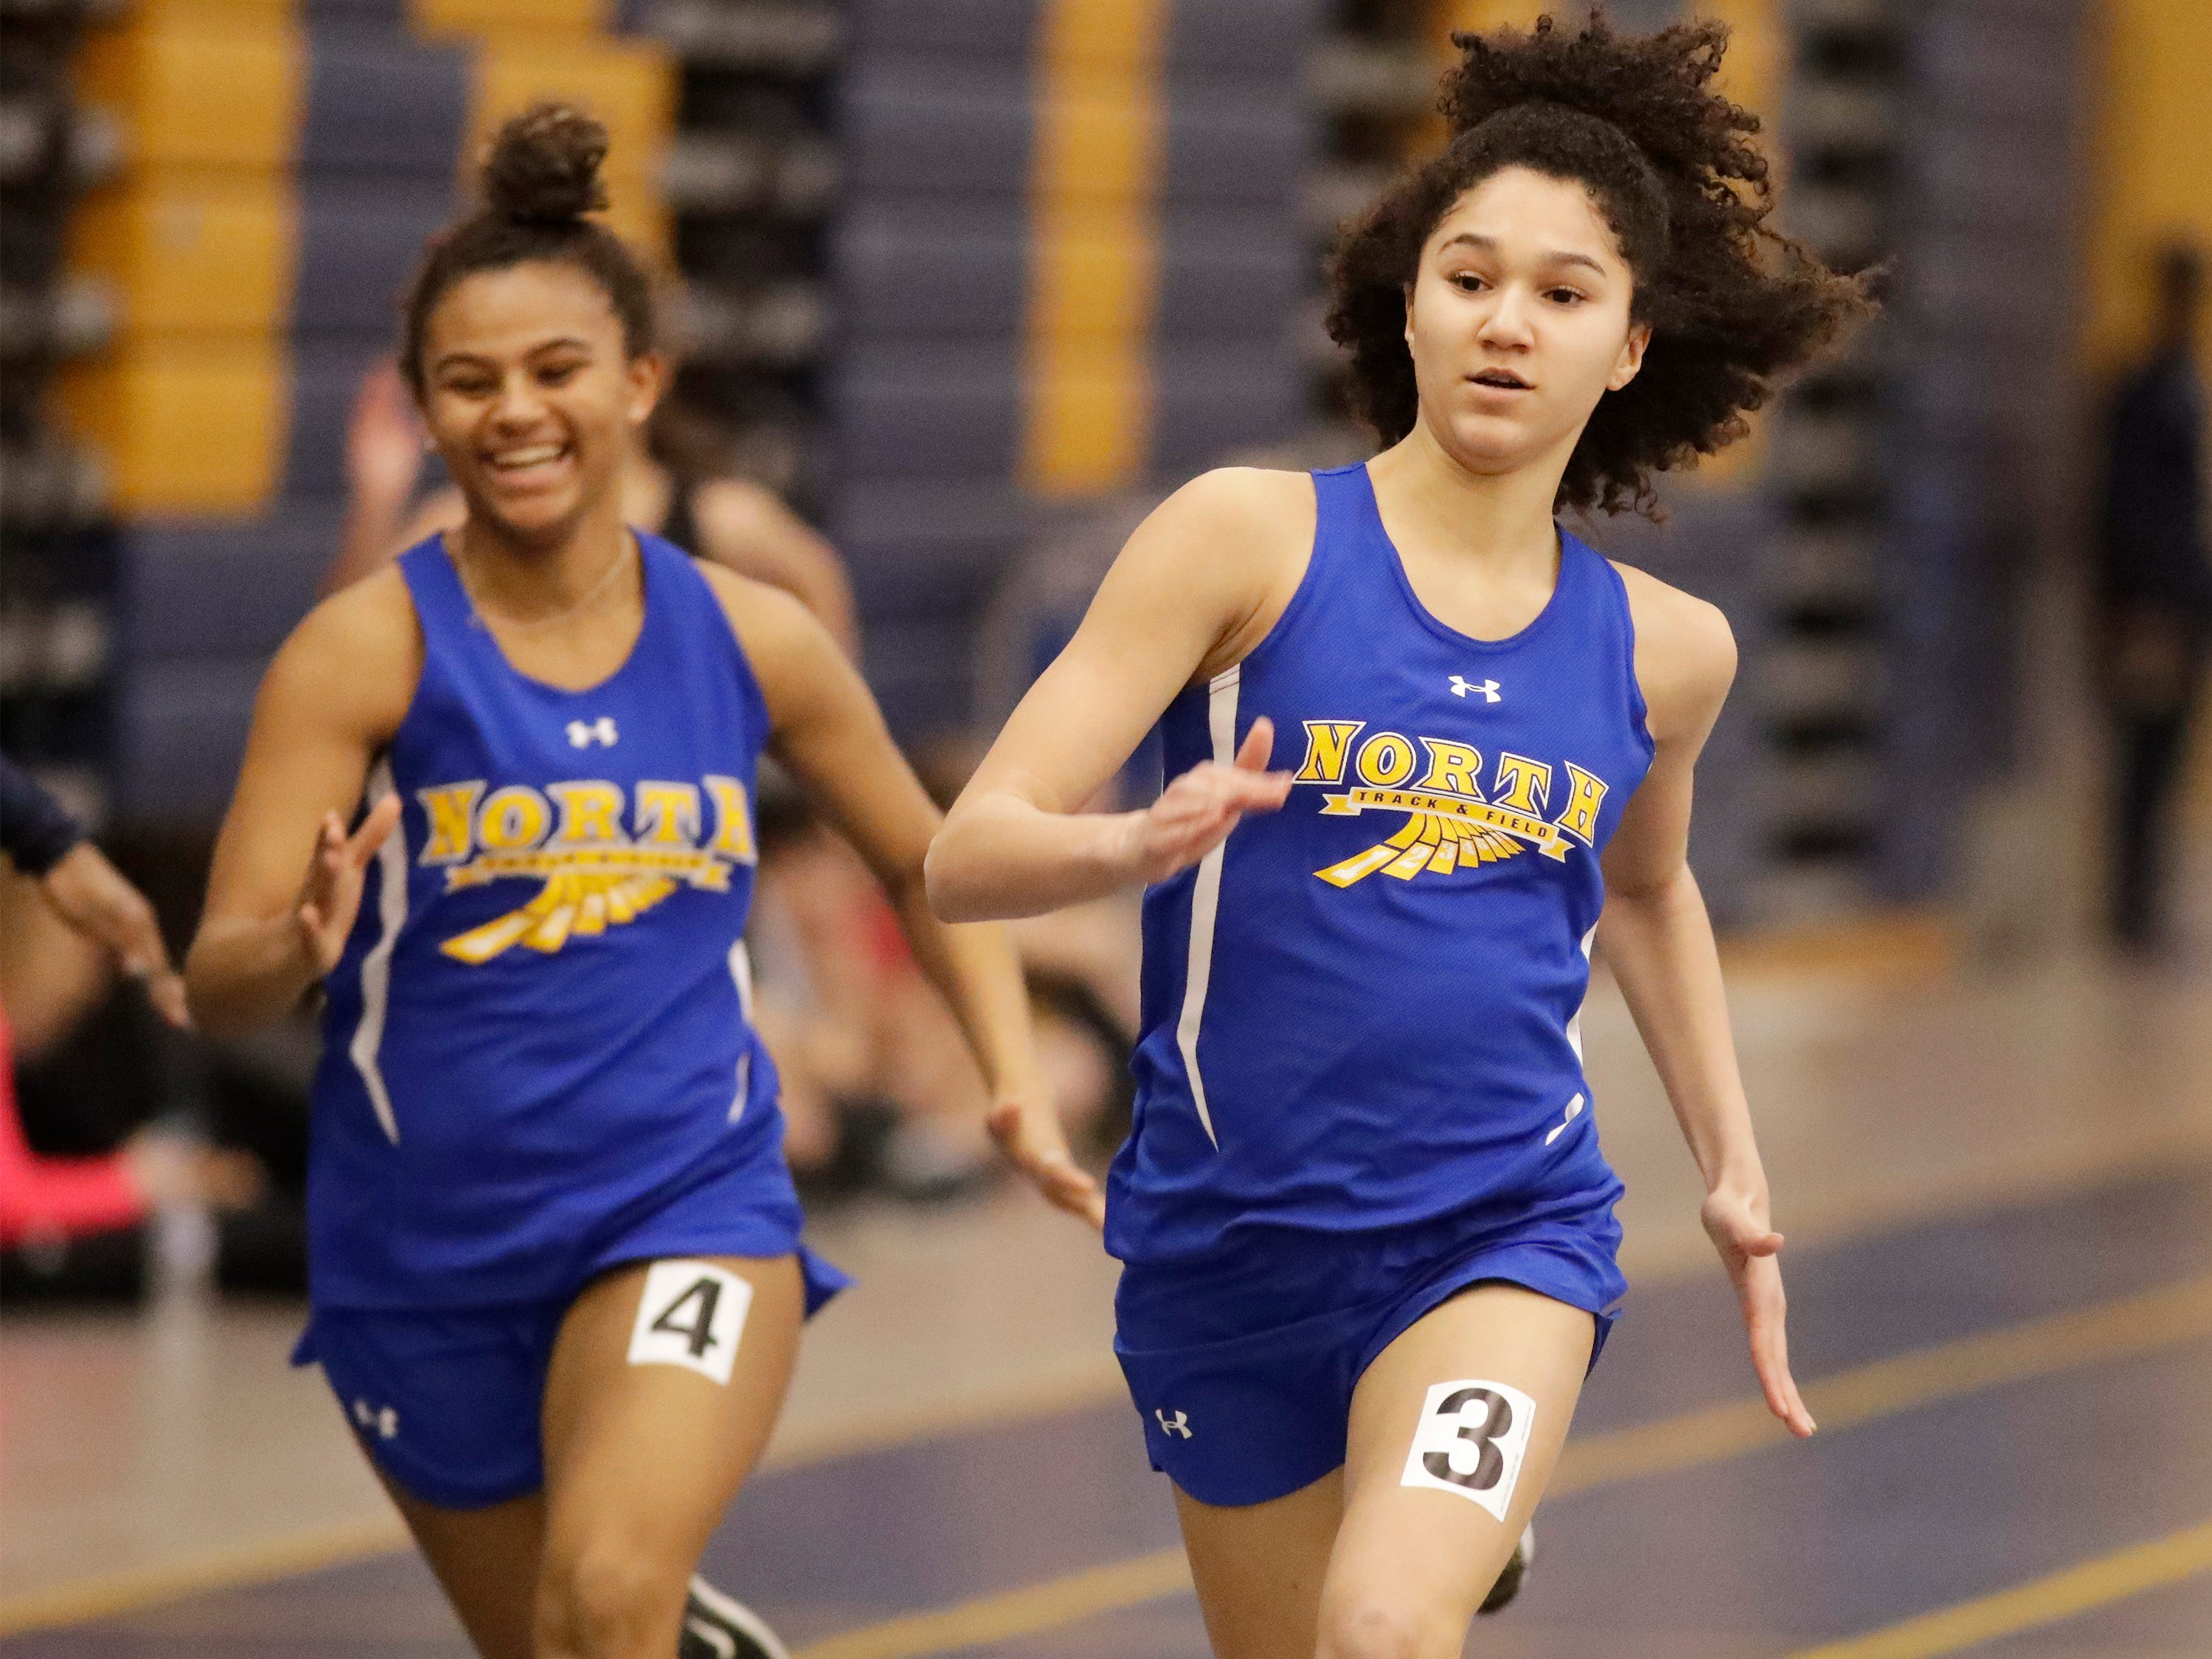 Nyla Spicer (4) and  Alexis Johnson (3) sprint in 55 meter dash at the Sheboygan North Invite track meet, Tuesday, April 2, 2019, in Sheboygan, Wis.